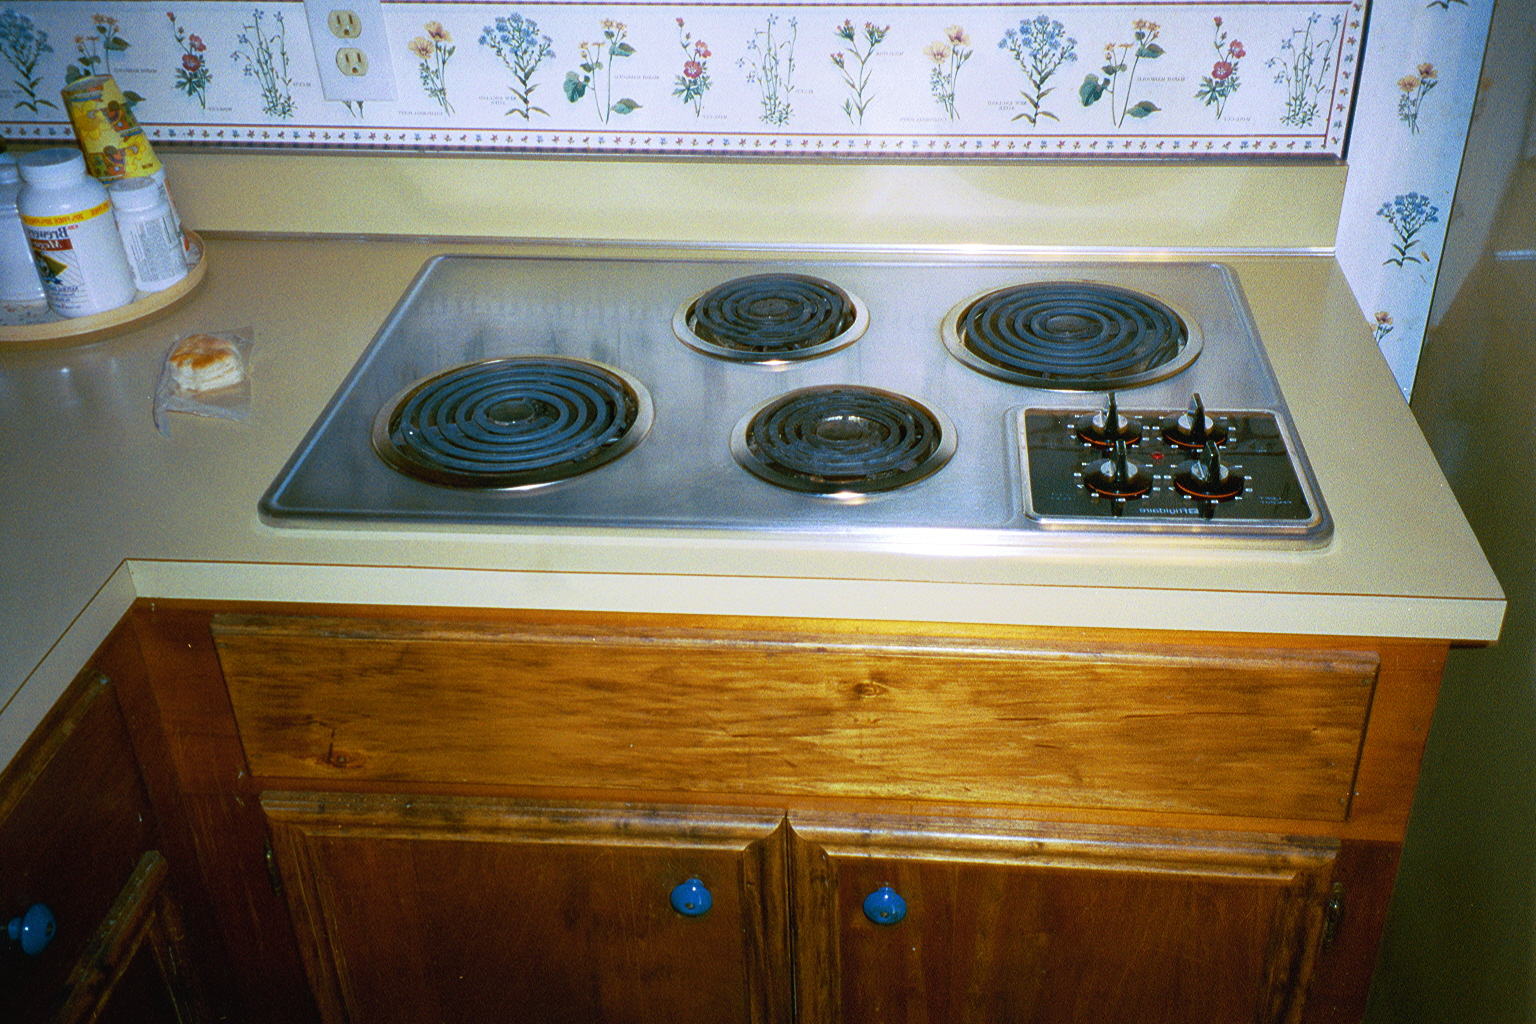 Countertop Stove : Built In Stove Top On Wooden Cabinet Countertop